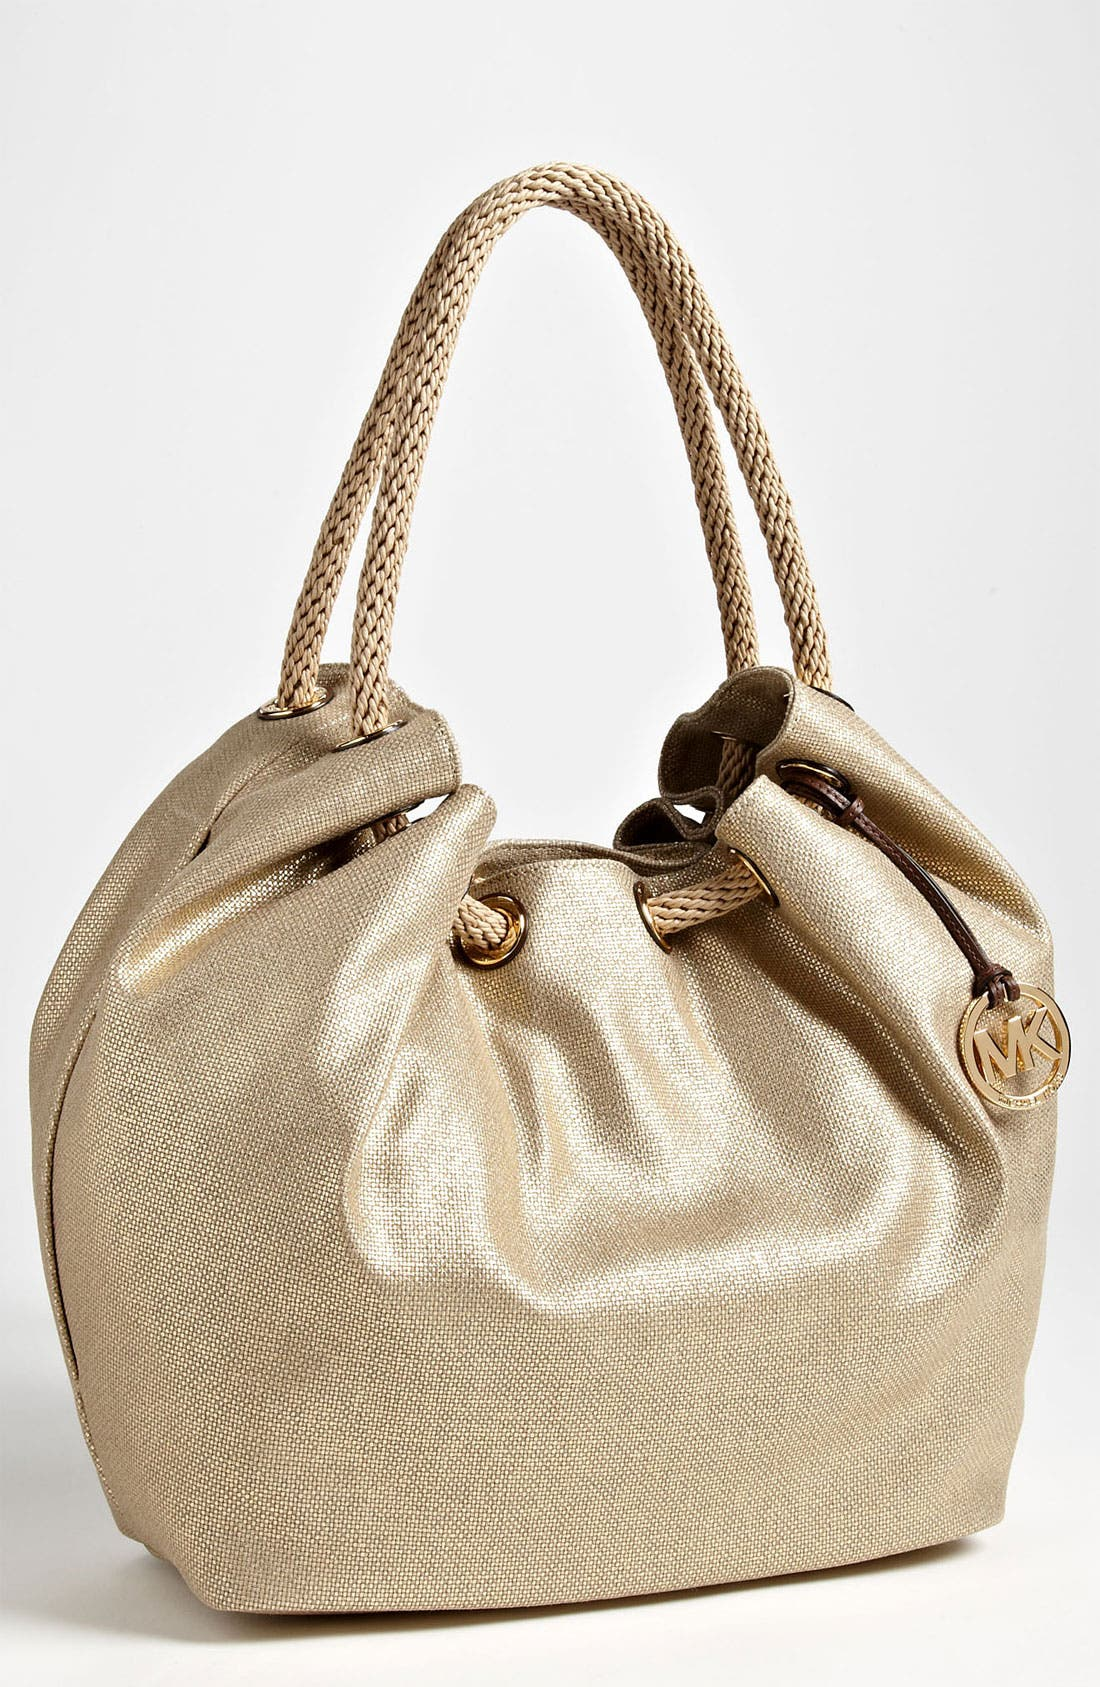 Alternate Image 1 Selected - MICHAEL Michael Kors 'Marina' Shoulder Tote